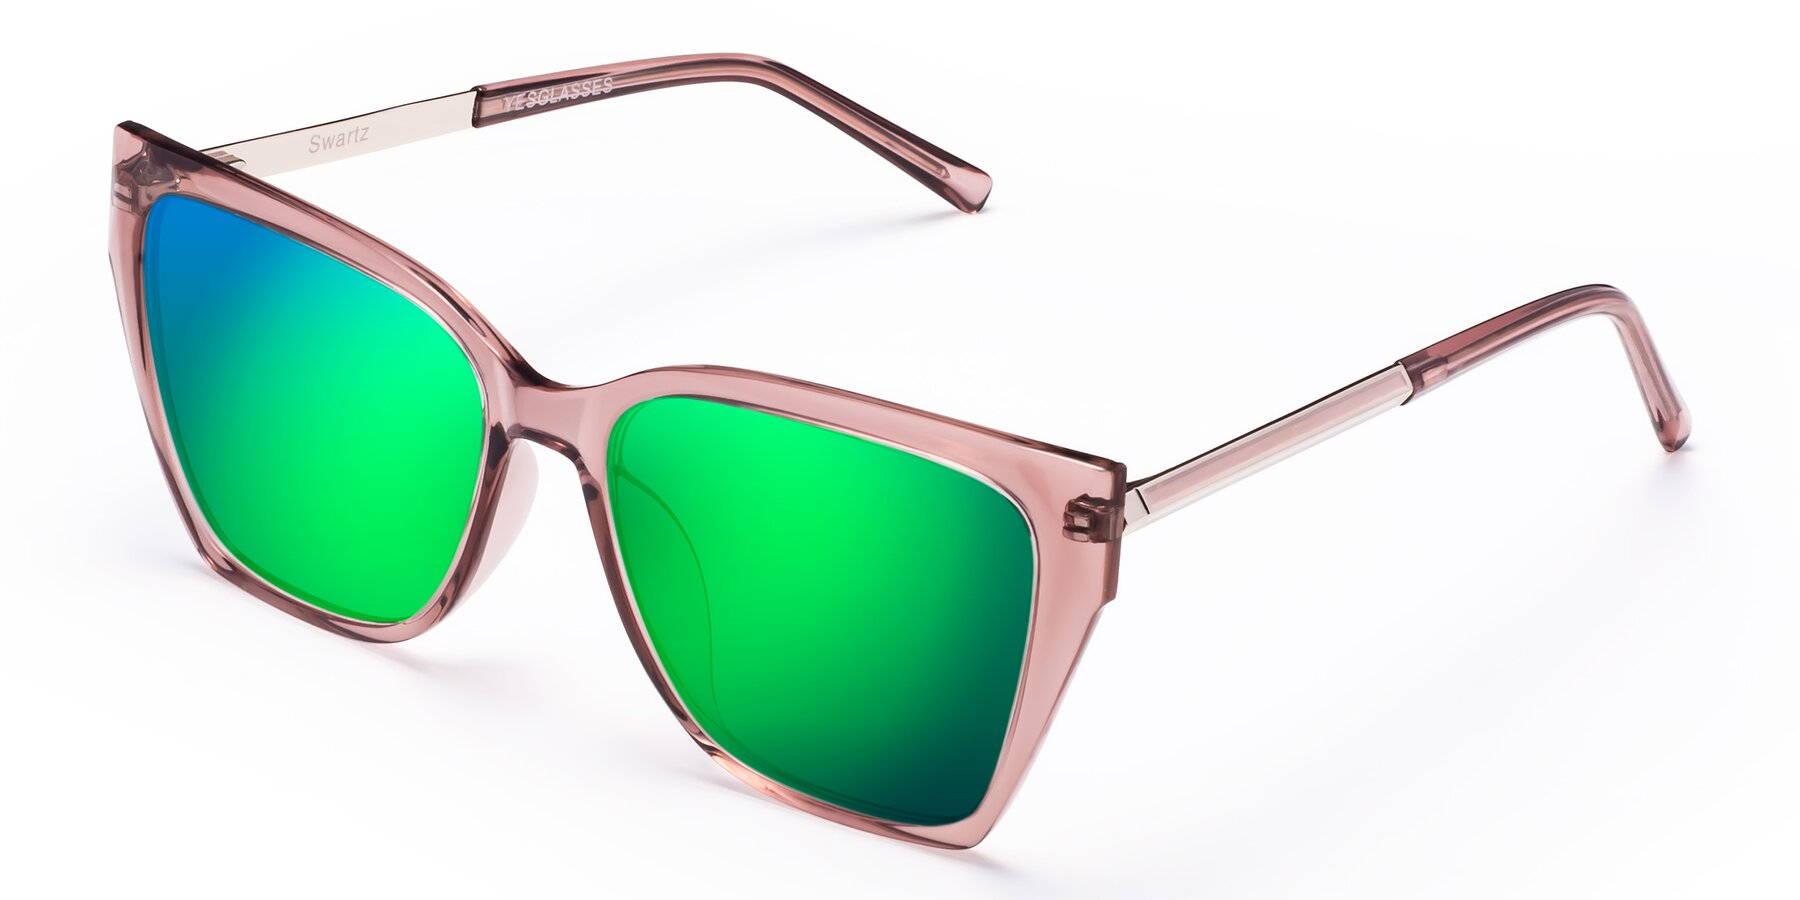 Angle of Swartz in Grape with Green Mirrored Lenses